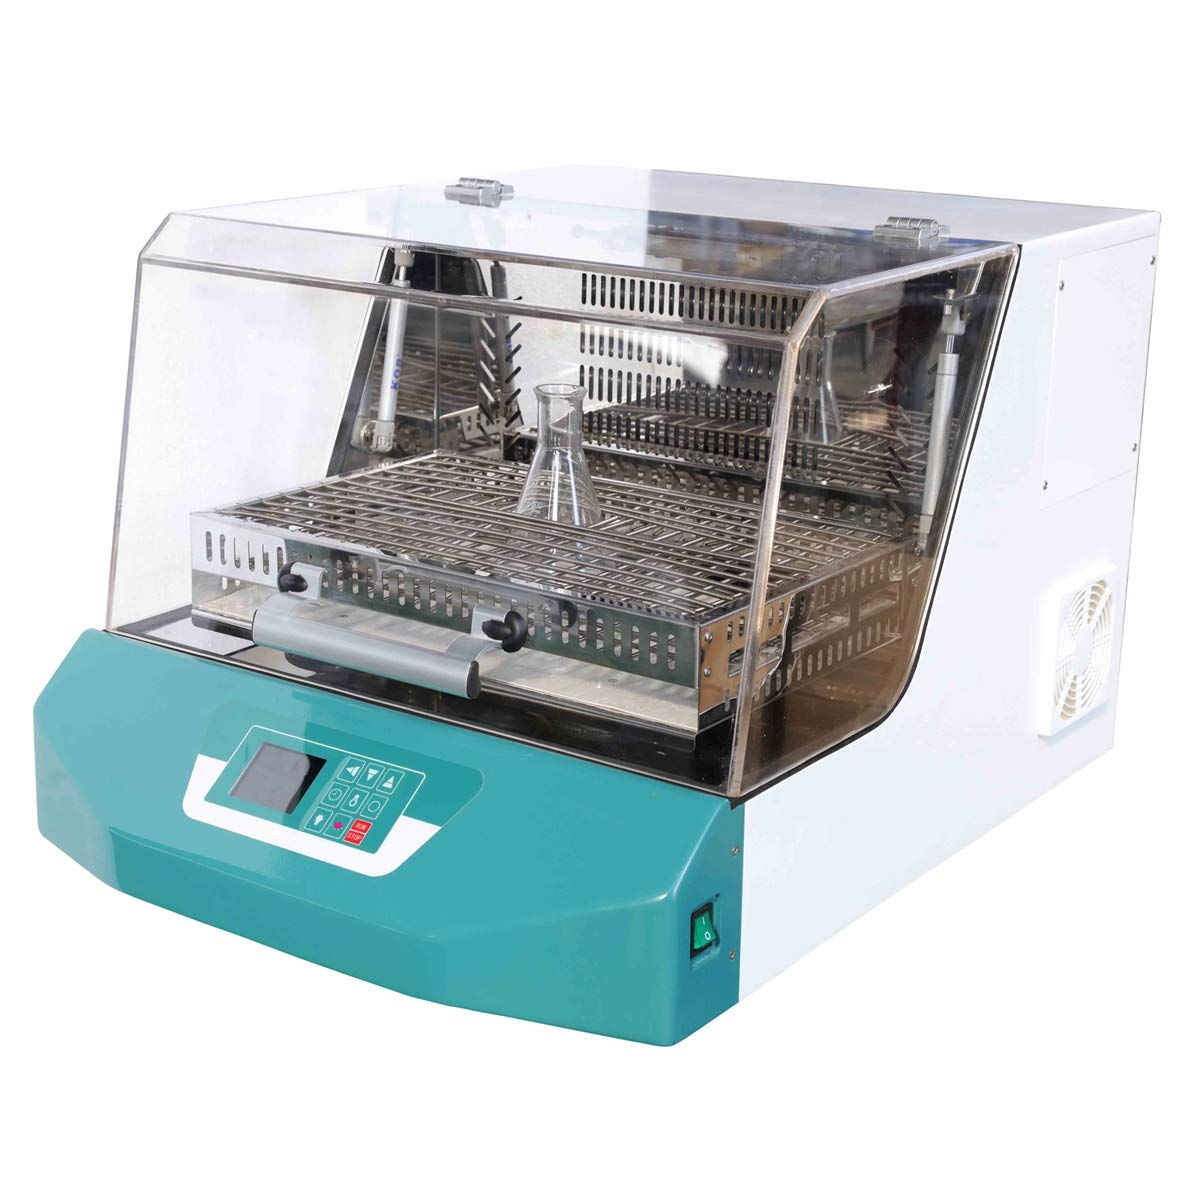 MXBAOHENG 50L Lab Thermostatic Shaker Temperature Controlled Incubator Oscillator for Bacterial Equipment 30~300rpm w/ 8pcs 250ml Standard Flask Clamps (220V)